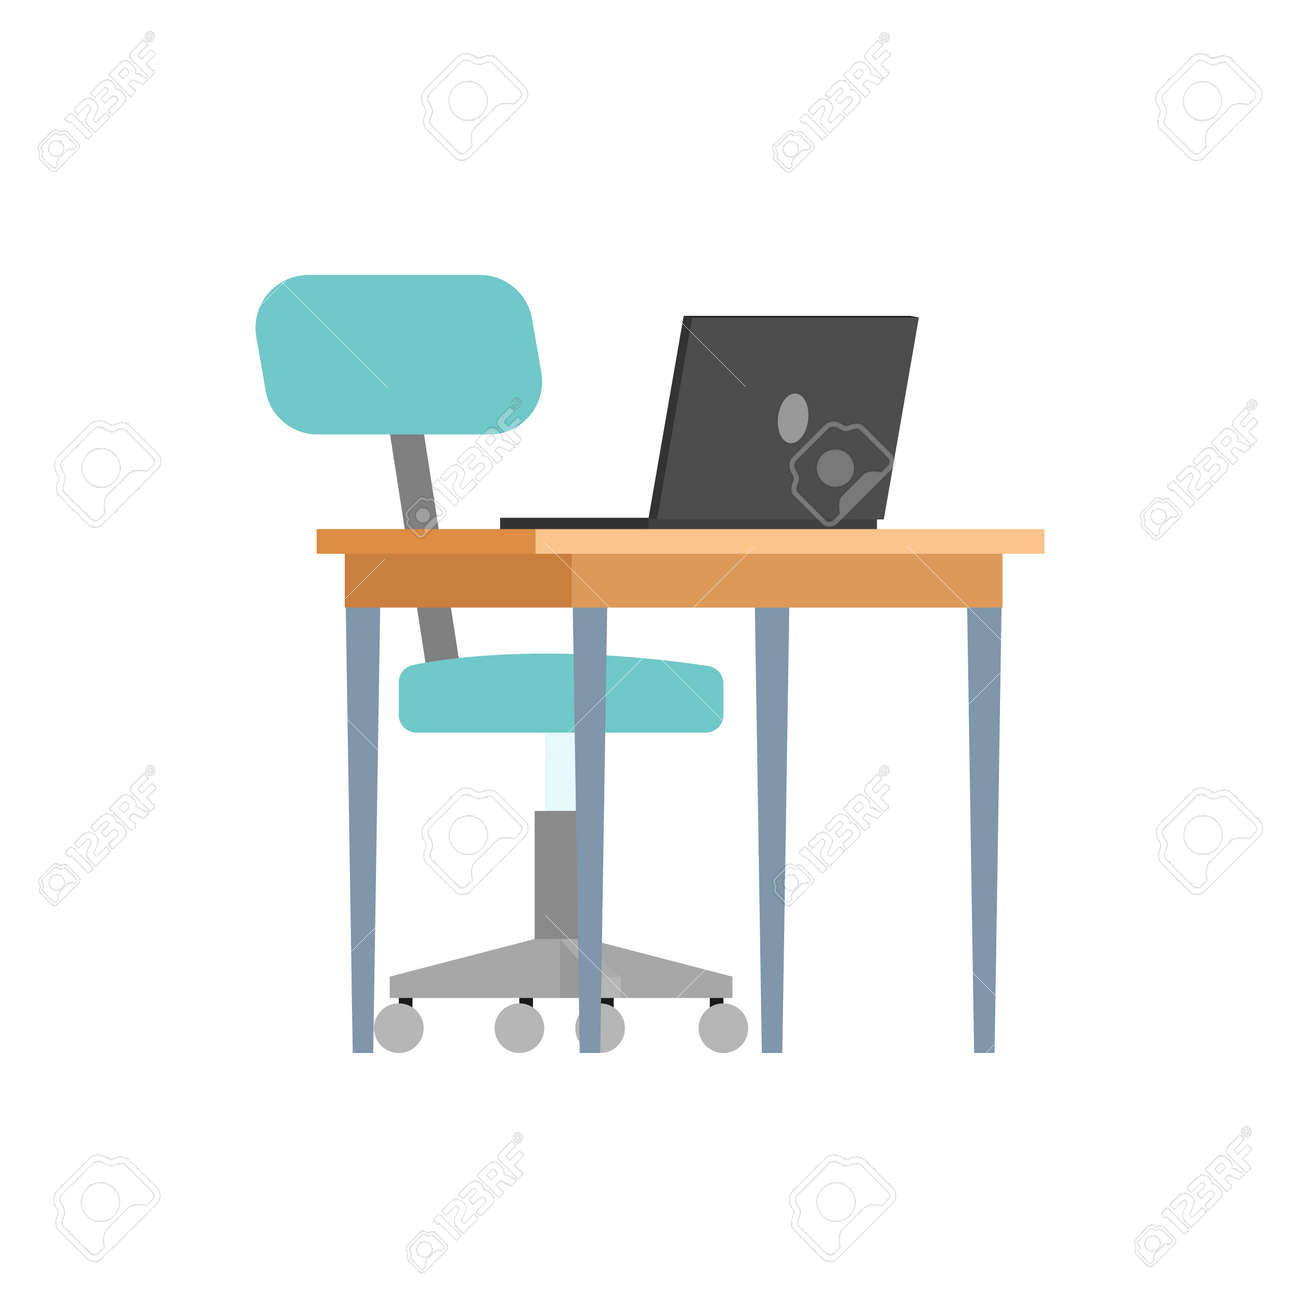 - Work Place, Computer Desk With Open Laptop, Office Chair On Wheels